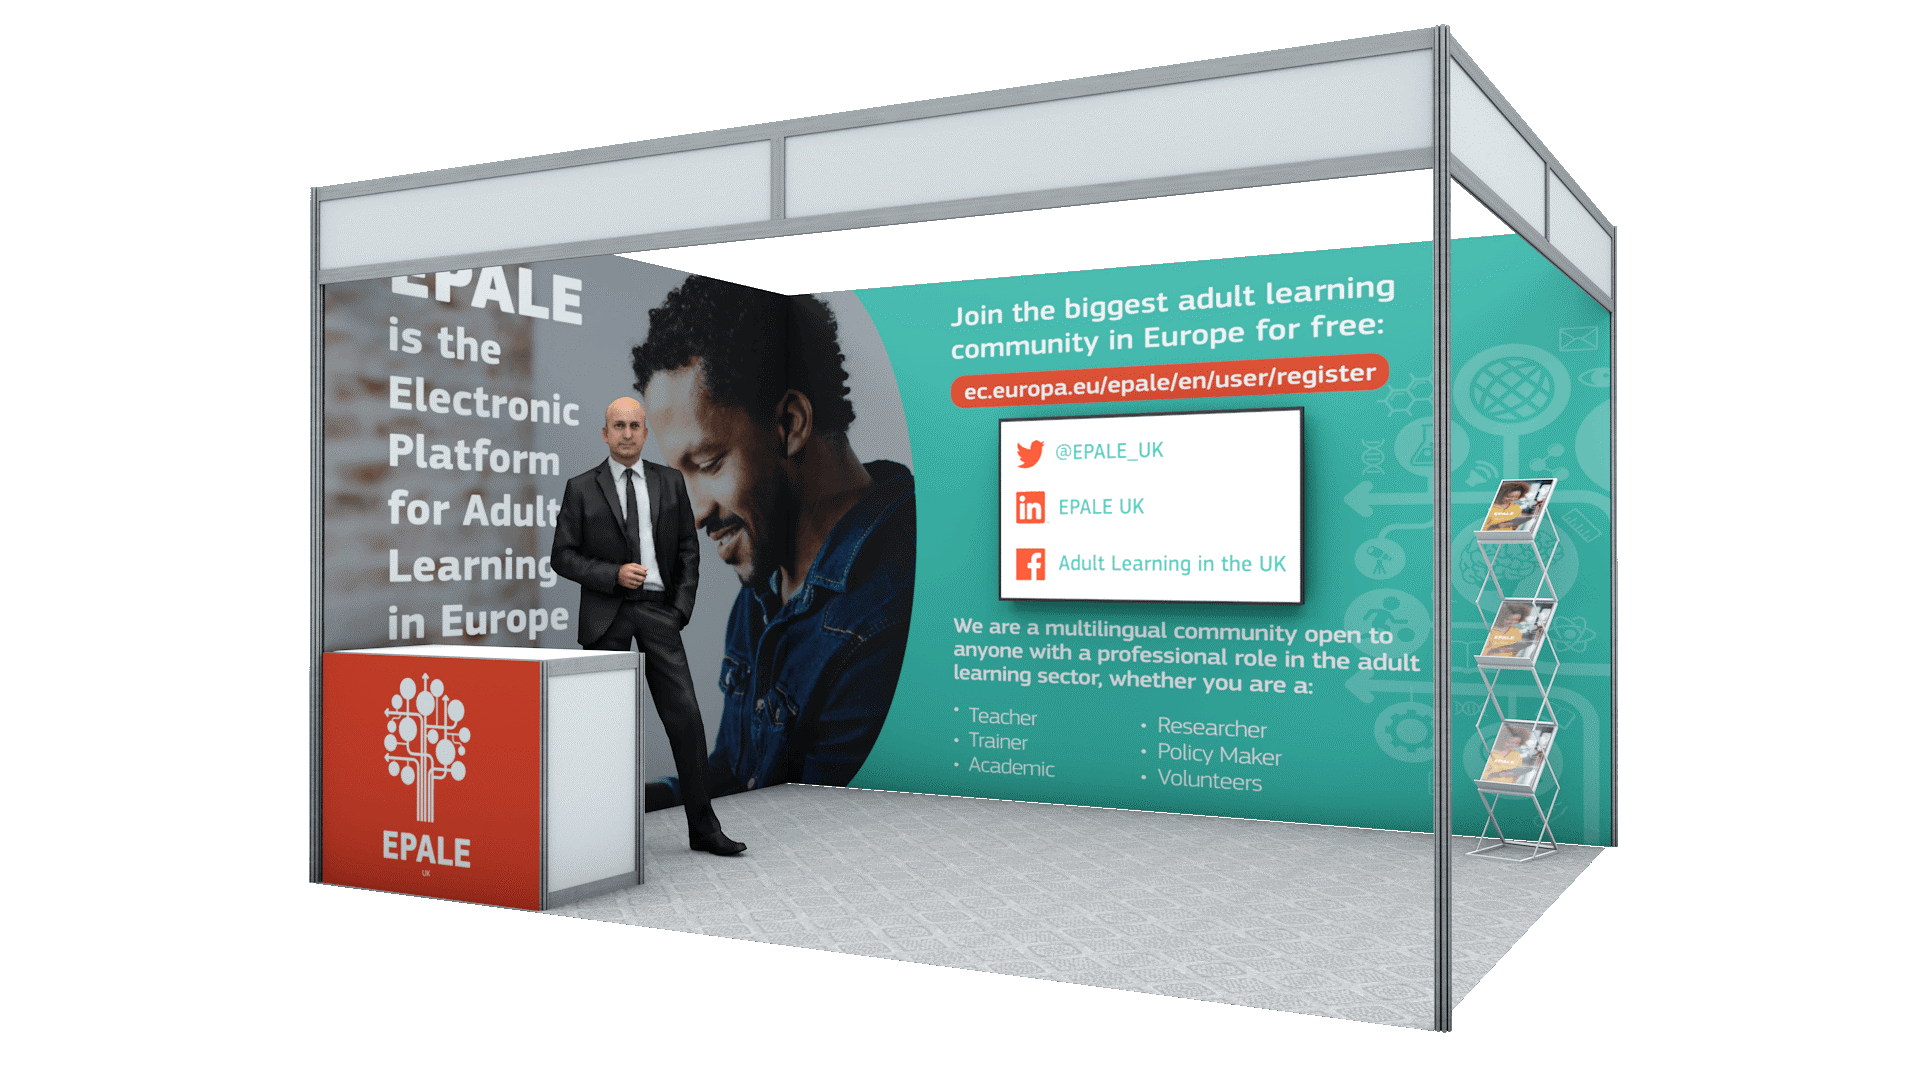 EPALE virtual stand